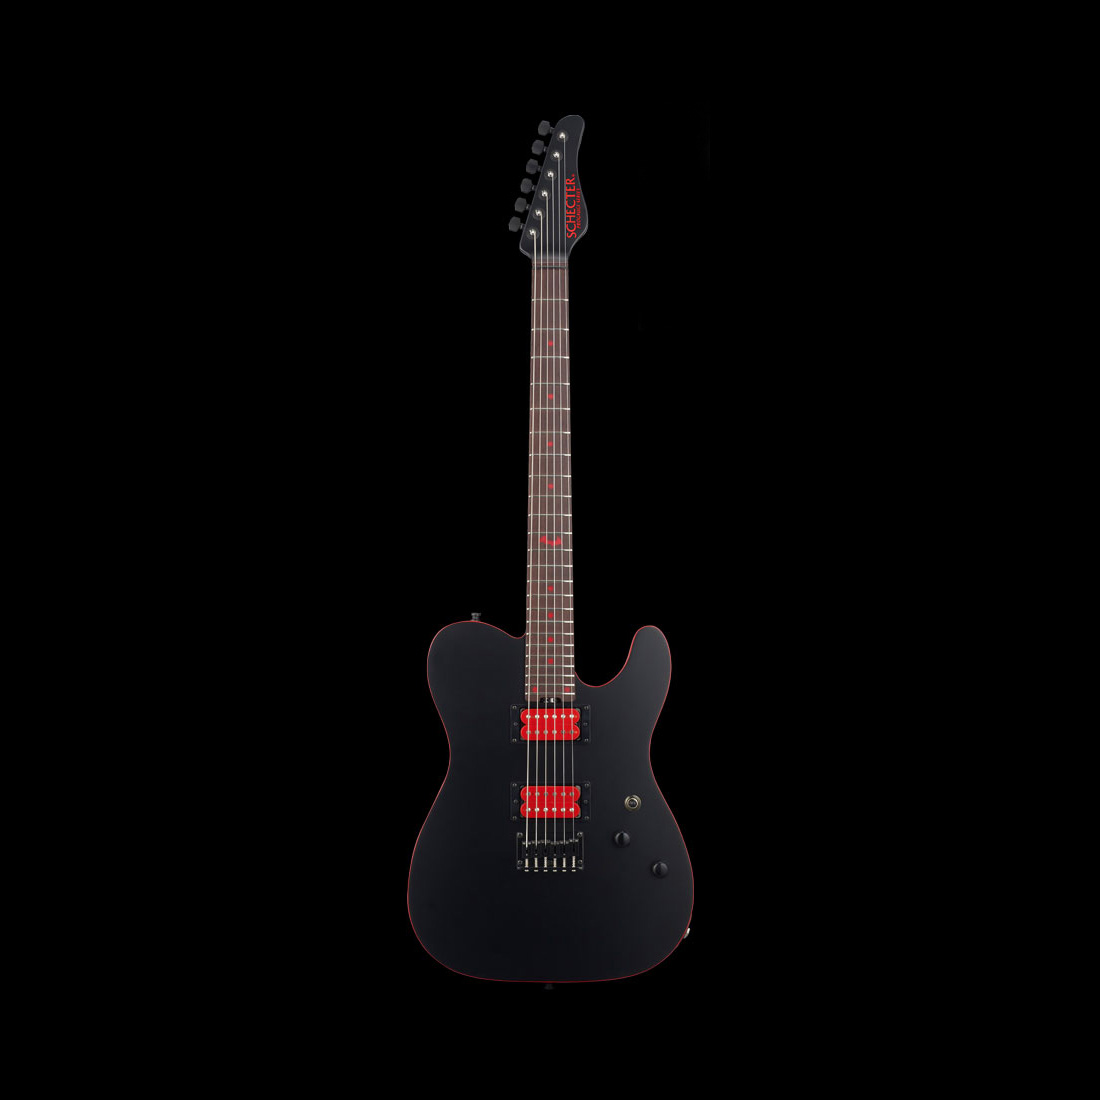 Schecter / PA-SM/SH Mat Black シェクター エレキギター SHOW-HATEシグネチヤー 【お取り寄せ商品】